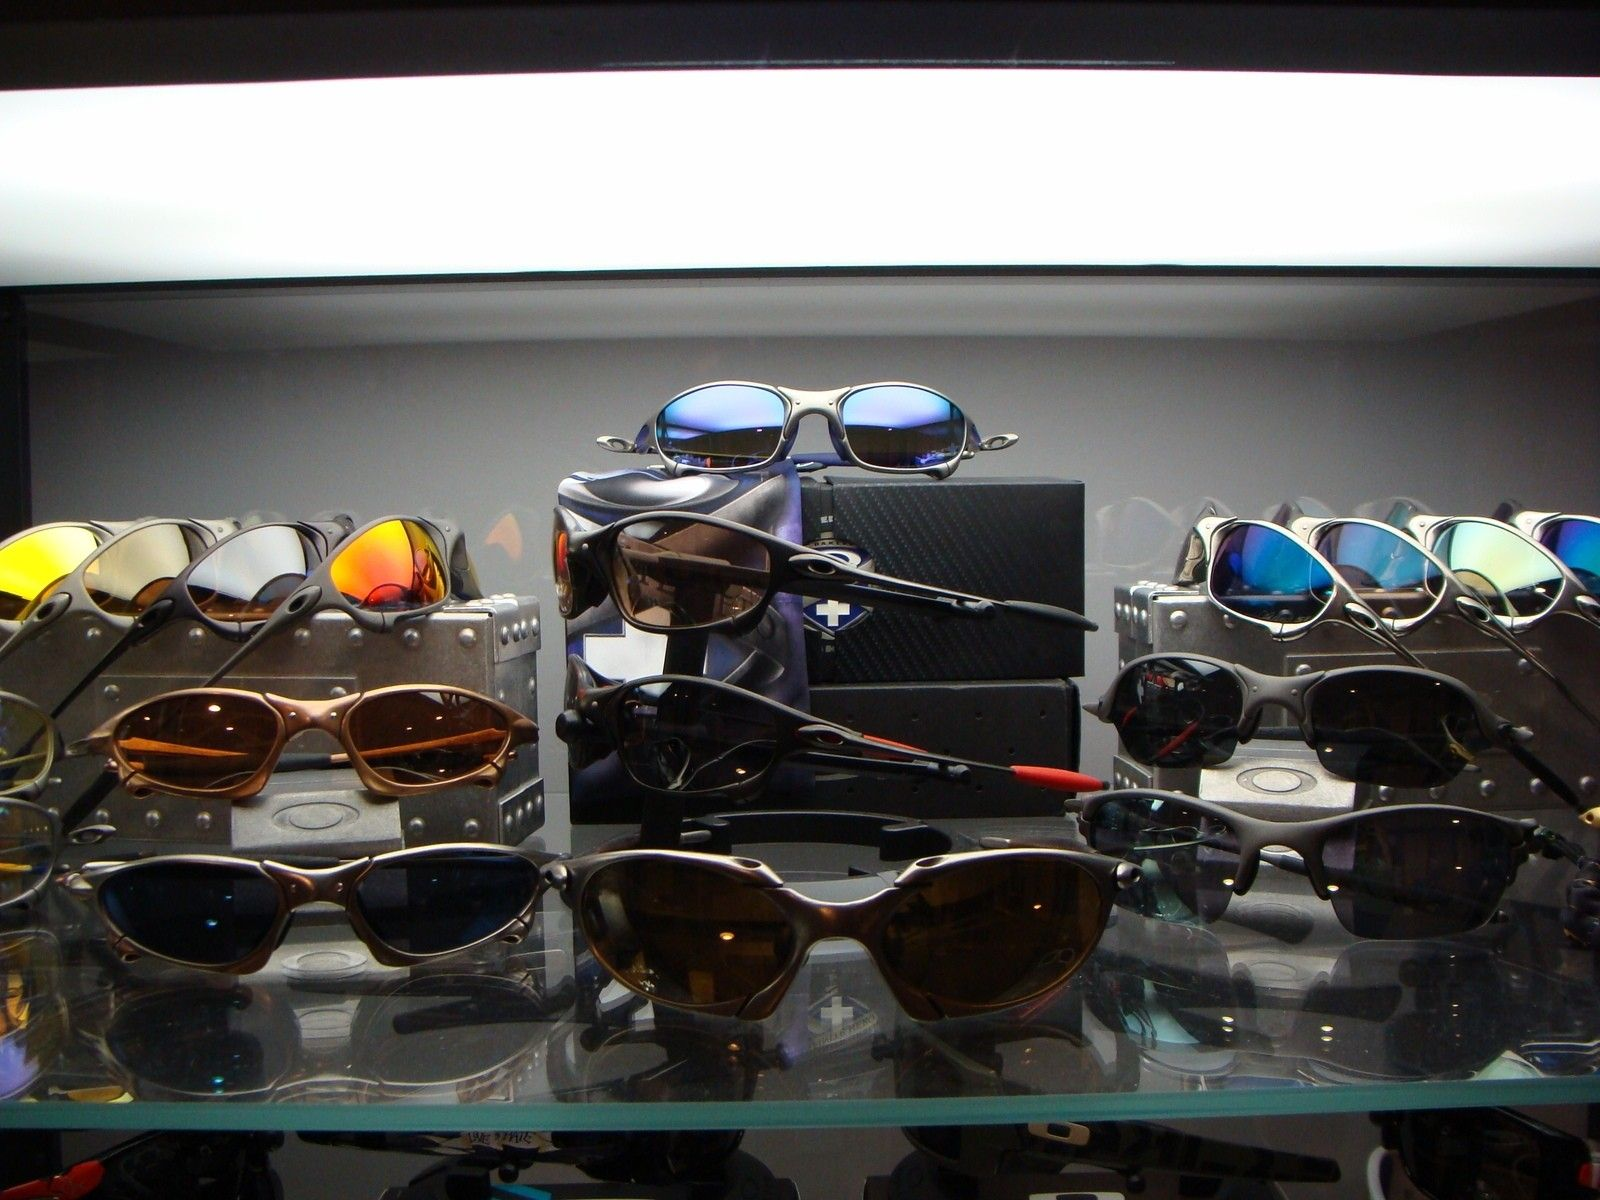 Preview Of My Oakley Collection - DSC07634.JPG